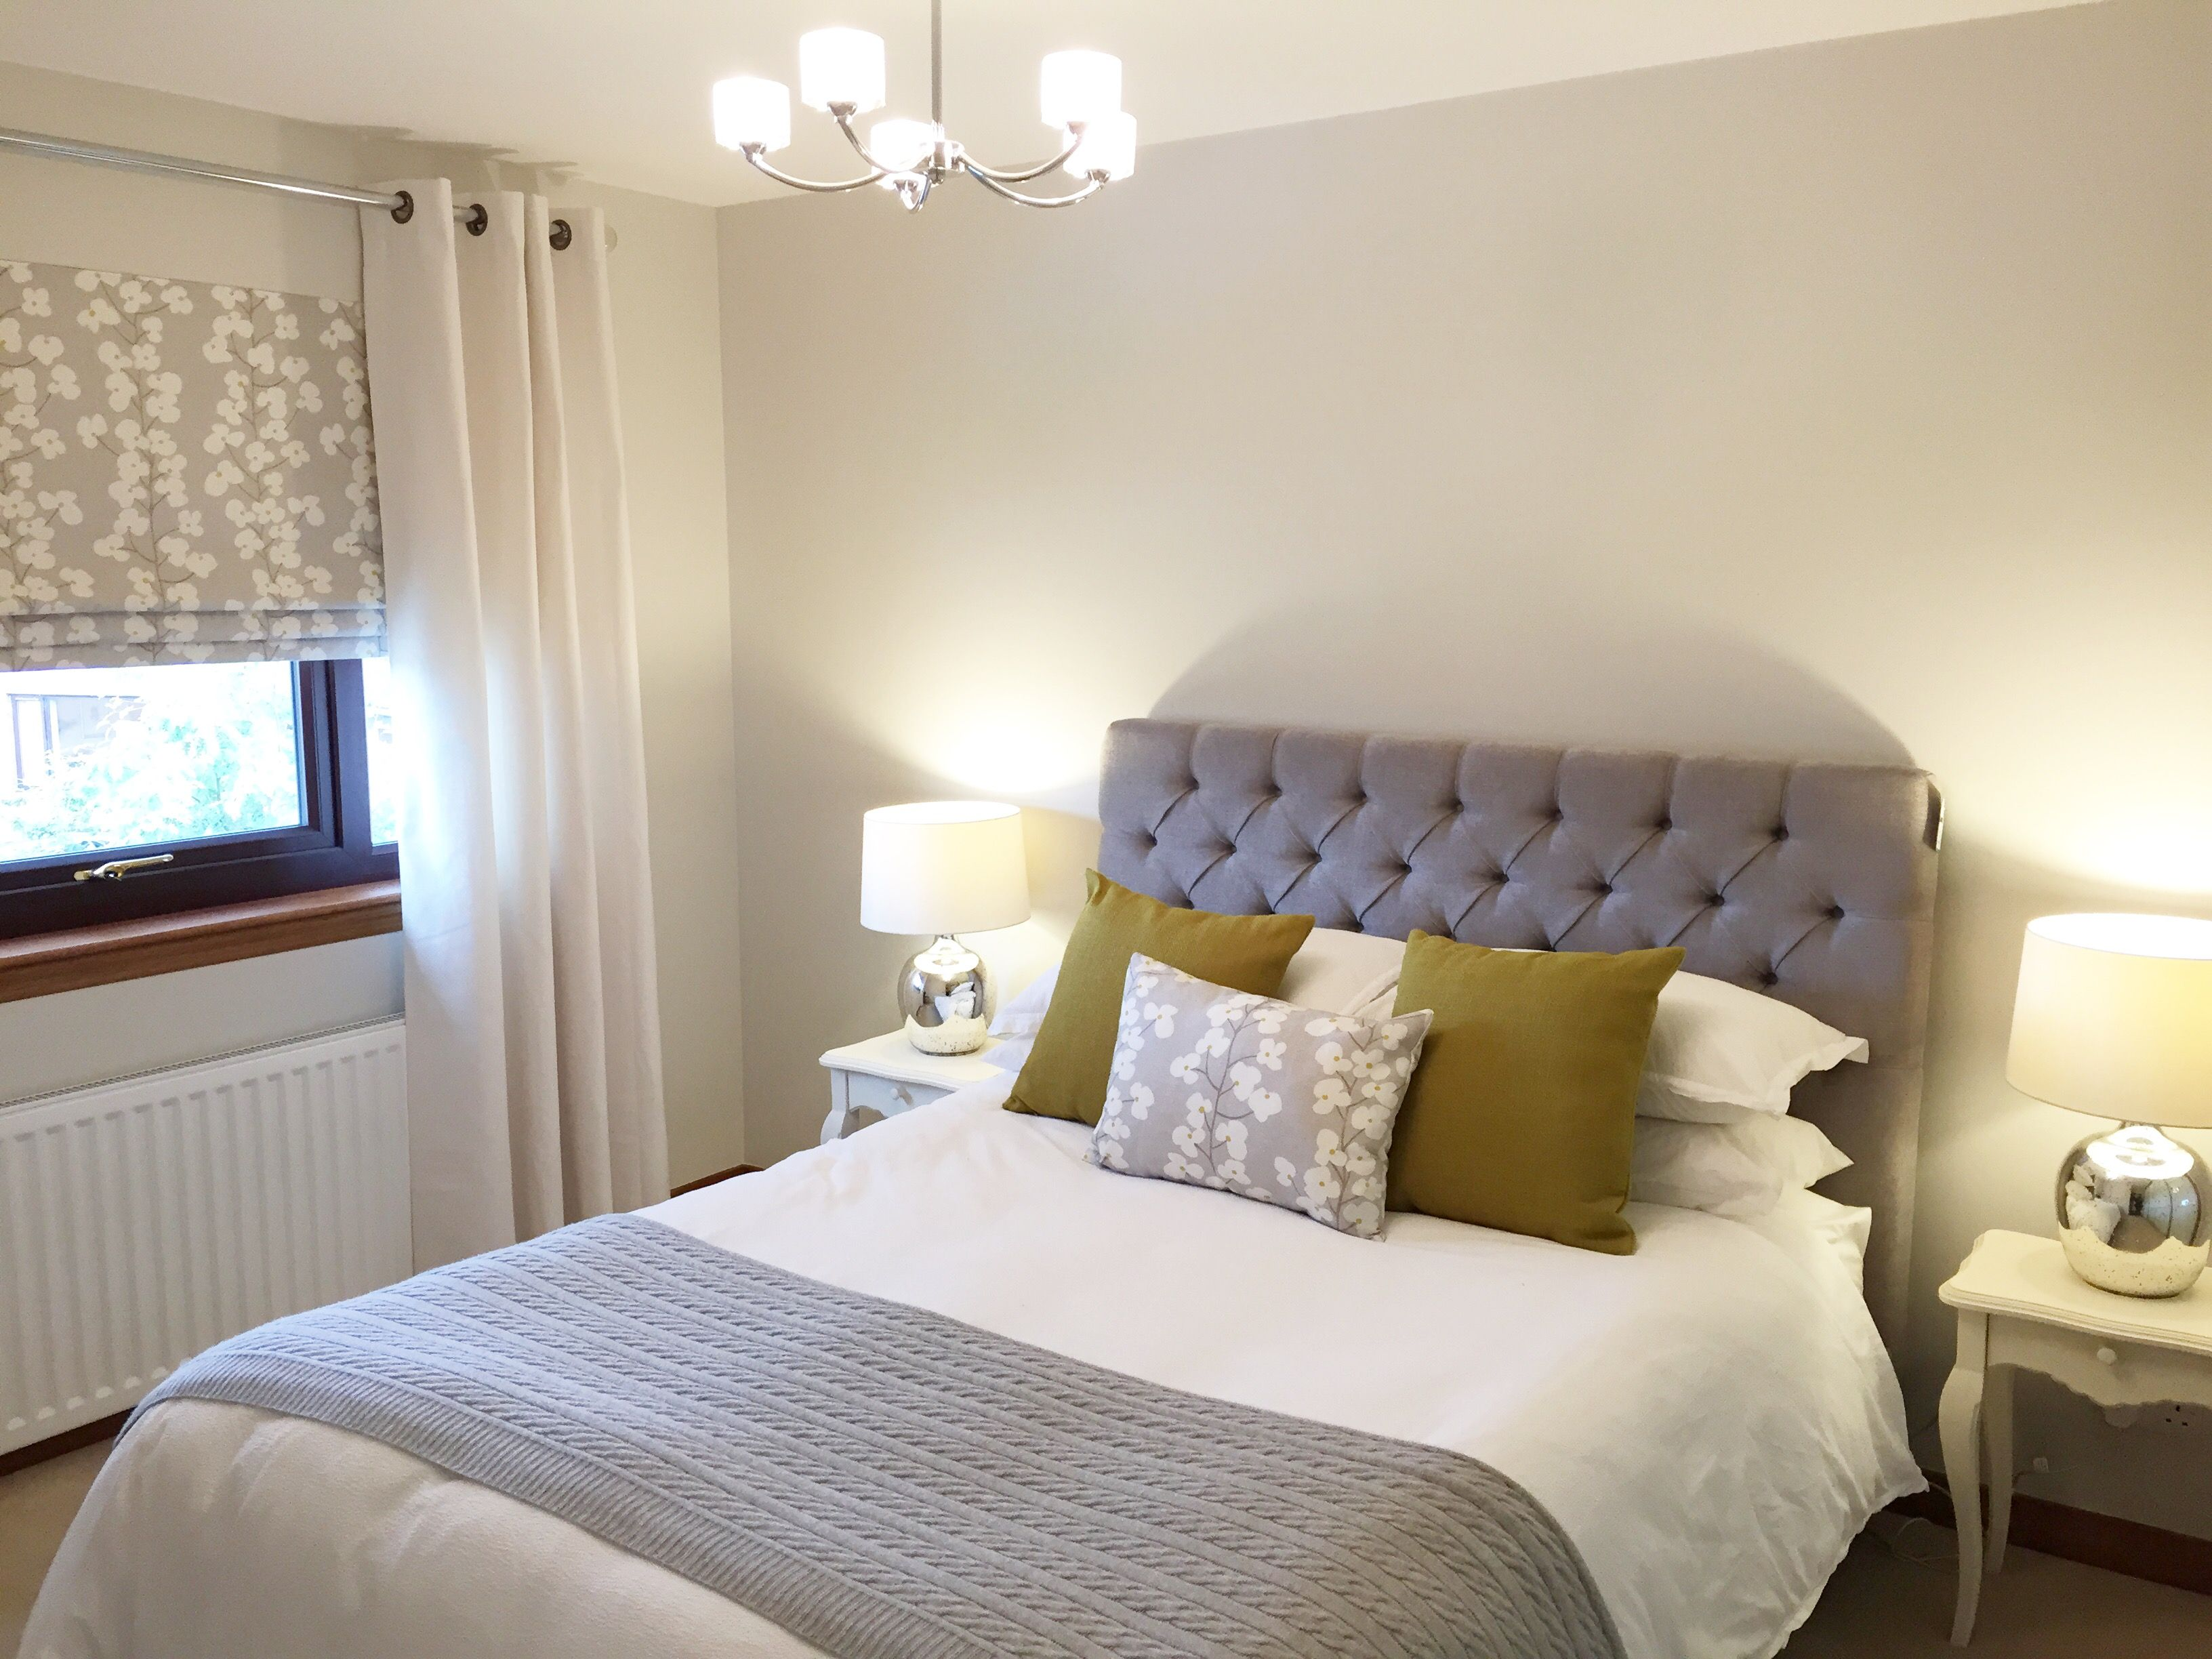 Walls Painted In Farrow And Ball Ammonite Beautifully Soft And Warm For A Bedroom Farrow And Ball Bedroom Guest Room Colors Relaxing Bedroom